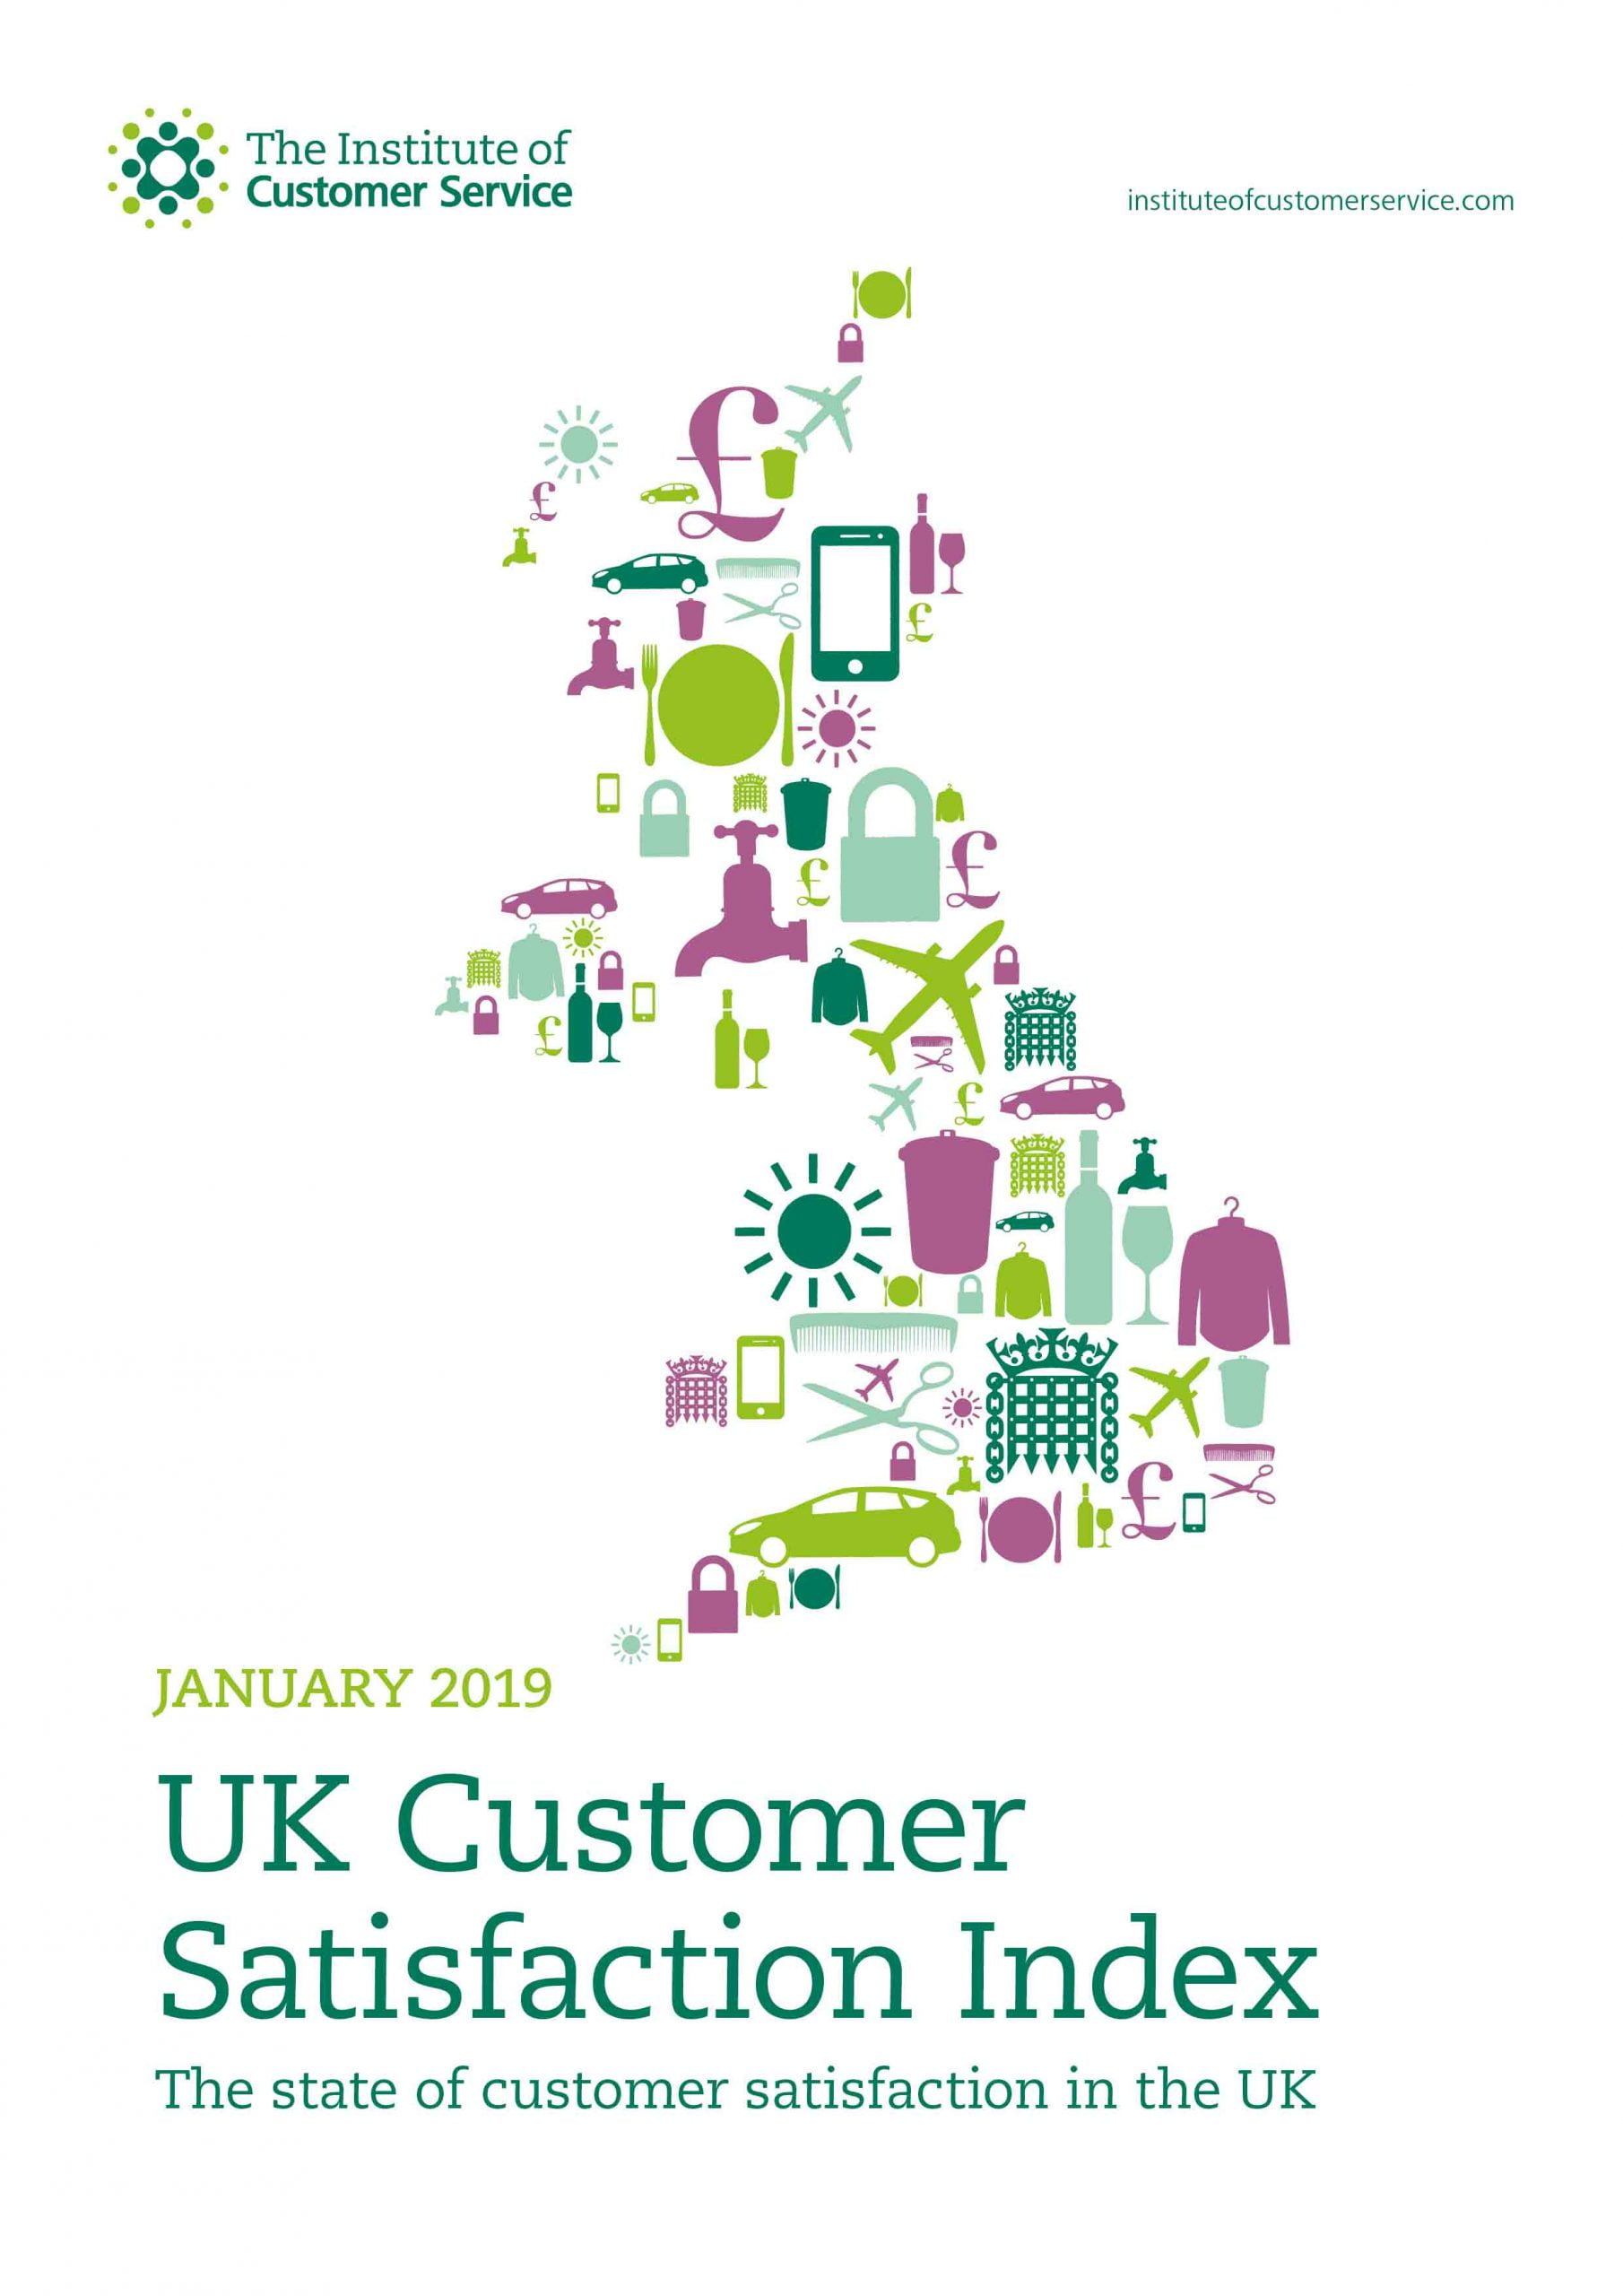 UKCSI: The State Of Customer Satisfaction In The UK – January 2019